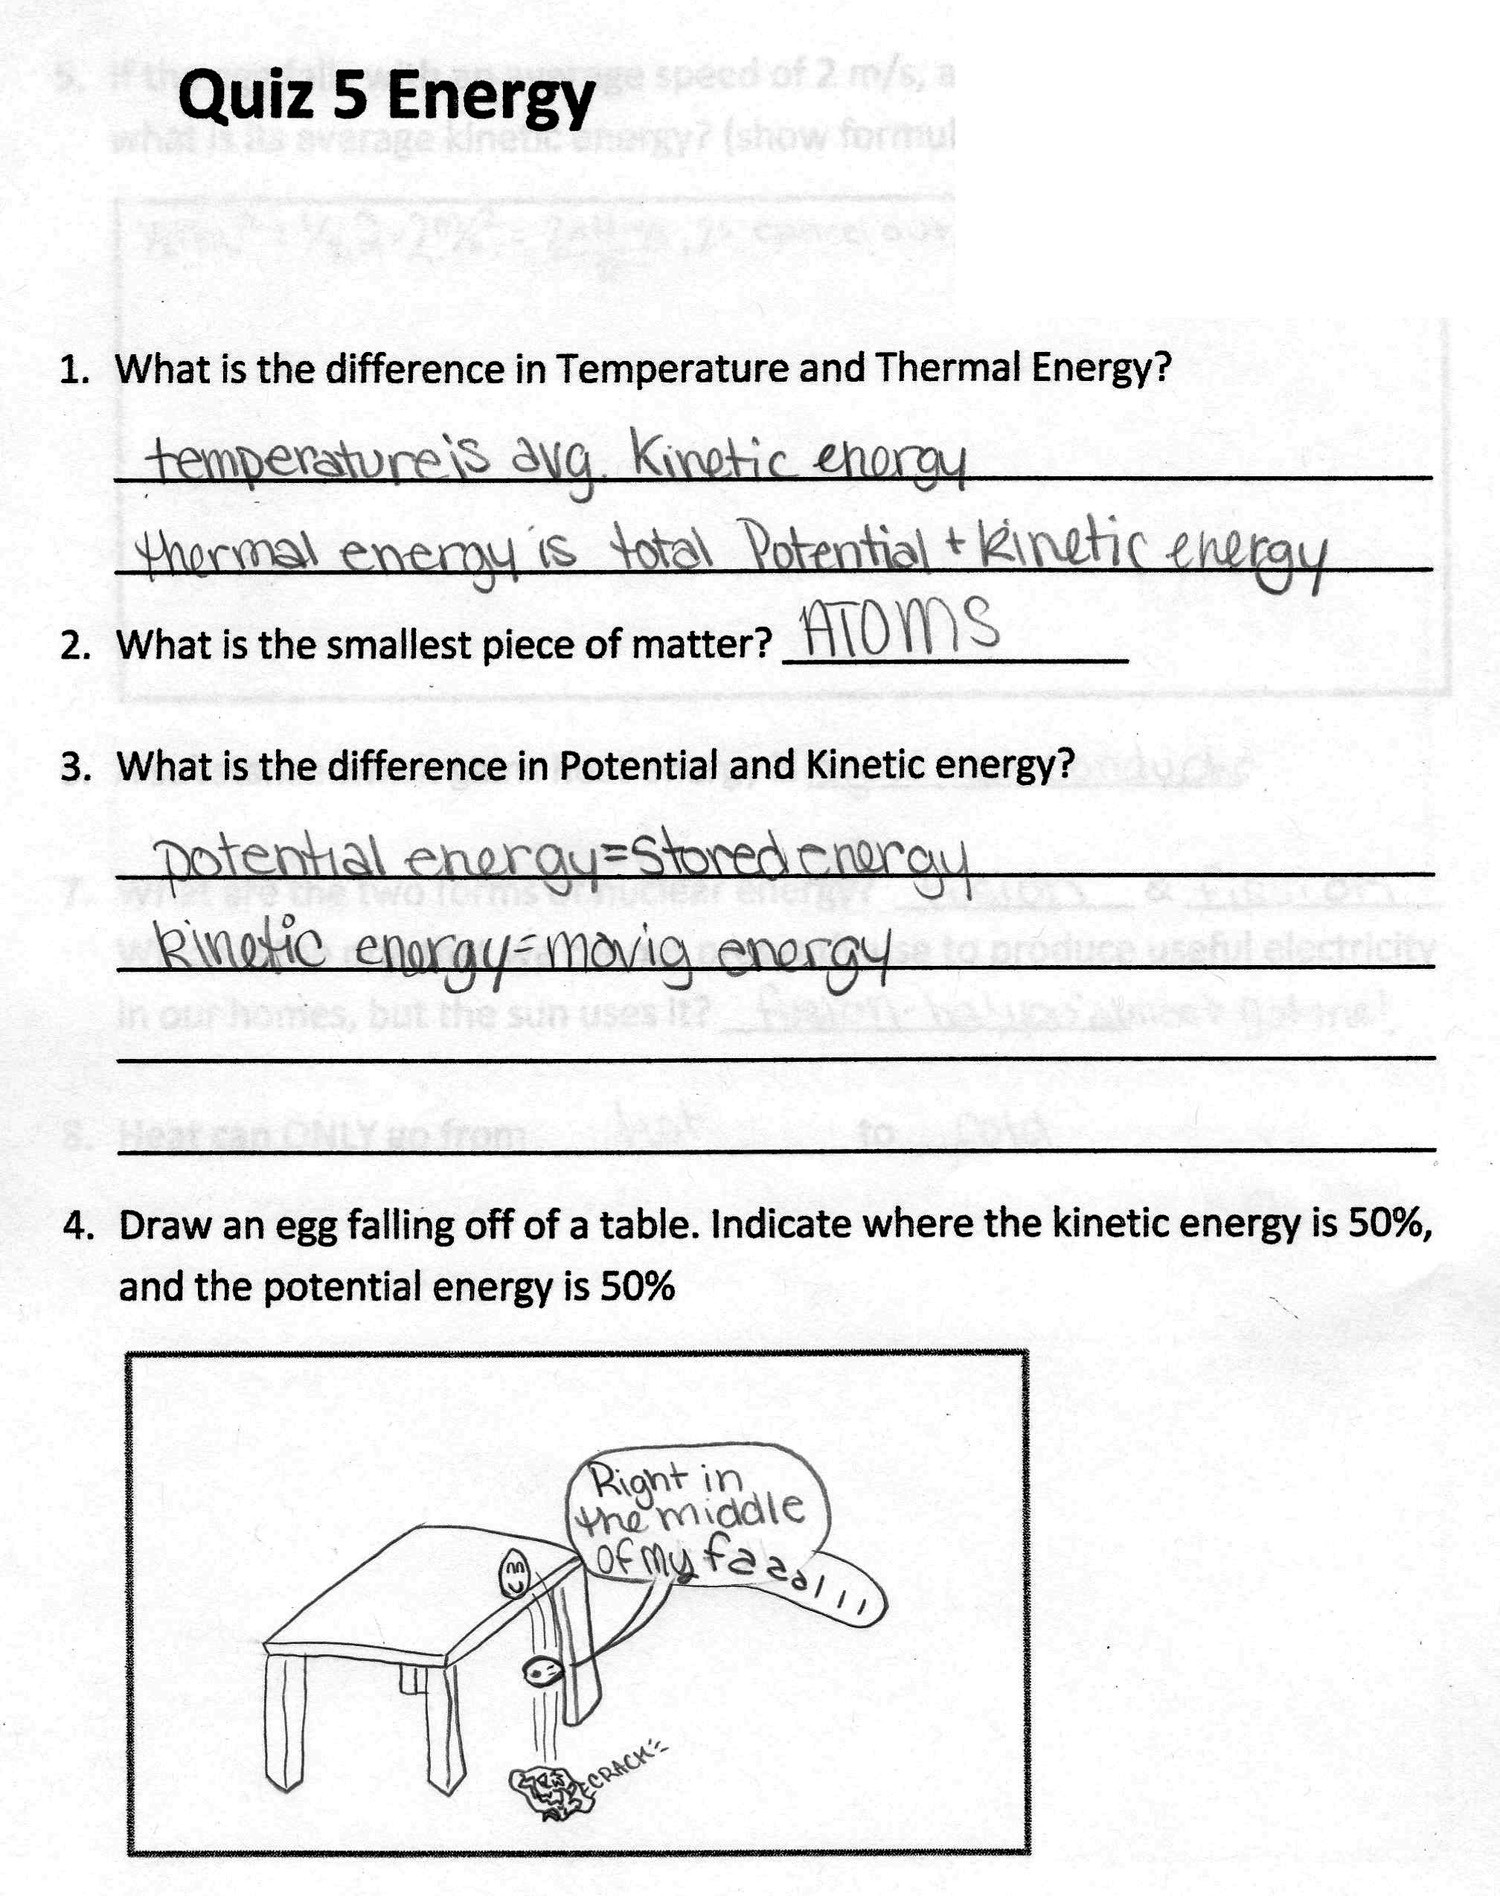 6th Grade Science Energy Worksheets 2016 3rd Quarter assignments 6th Grade Physical Science